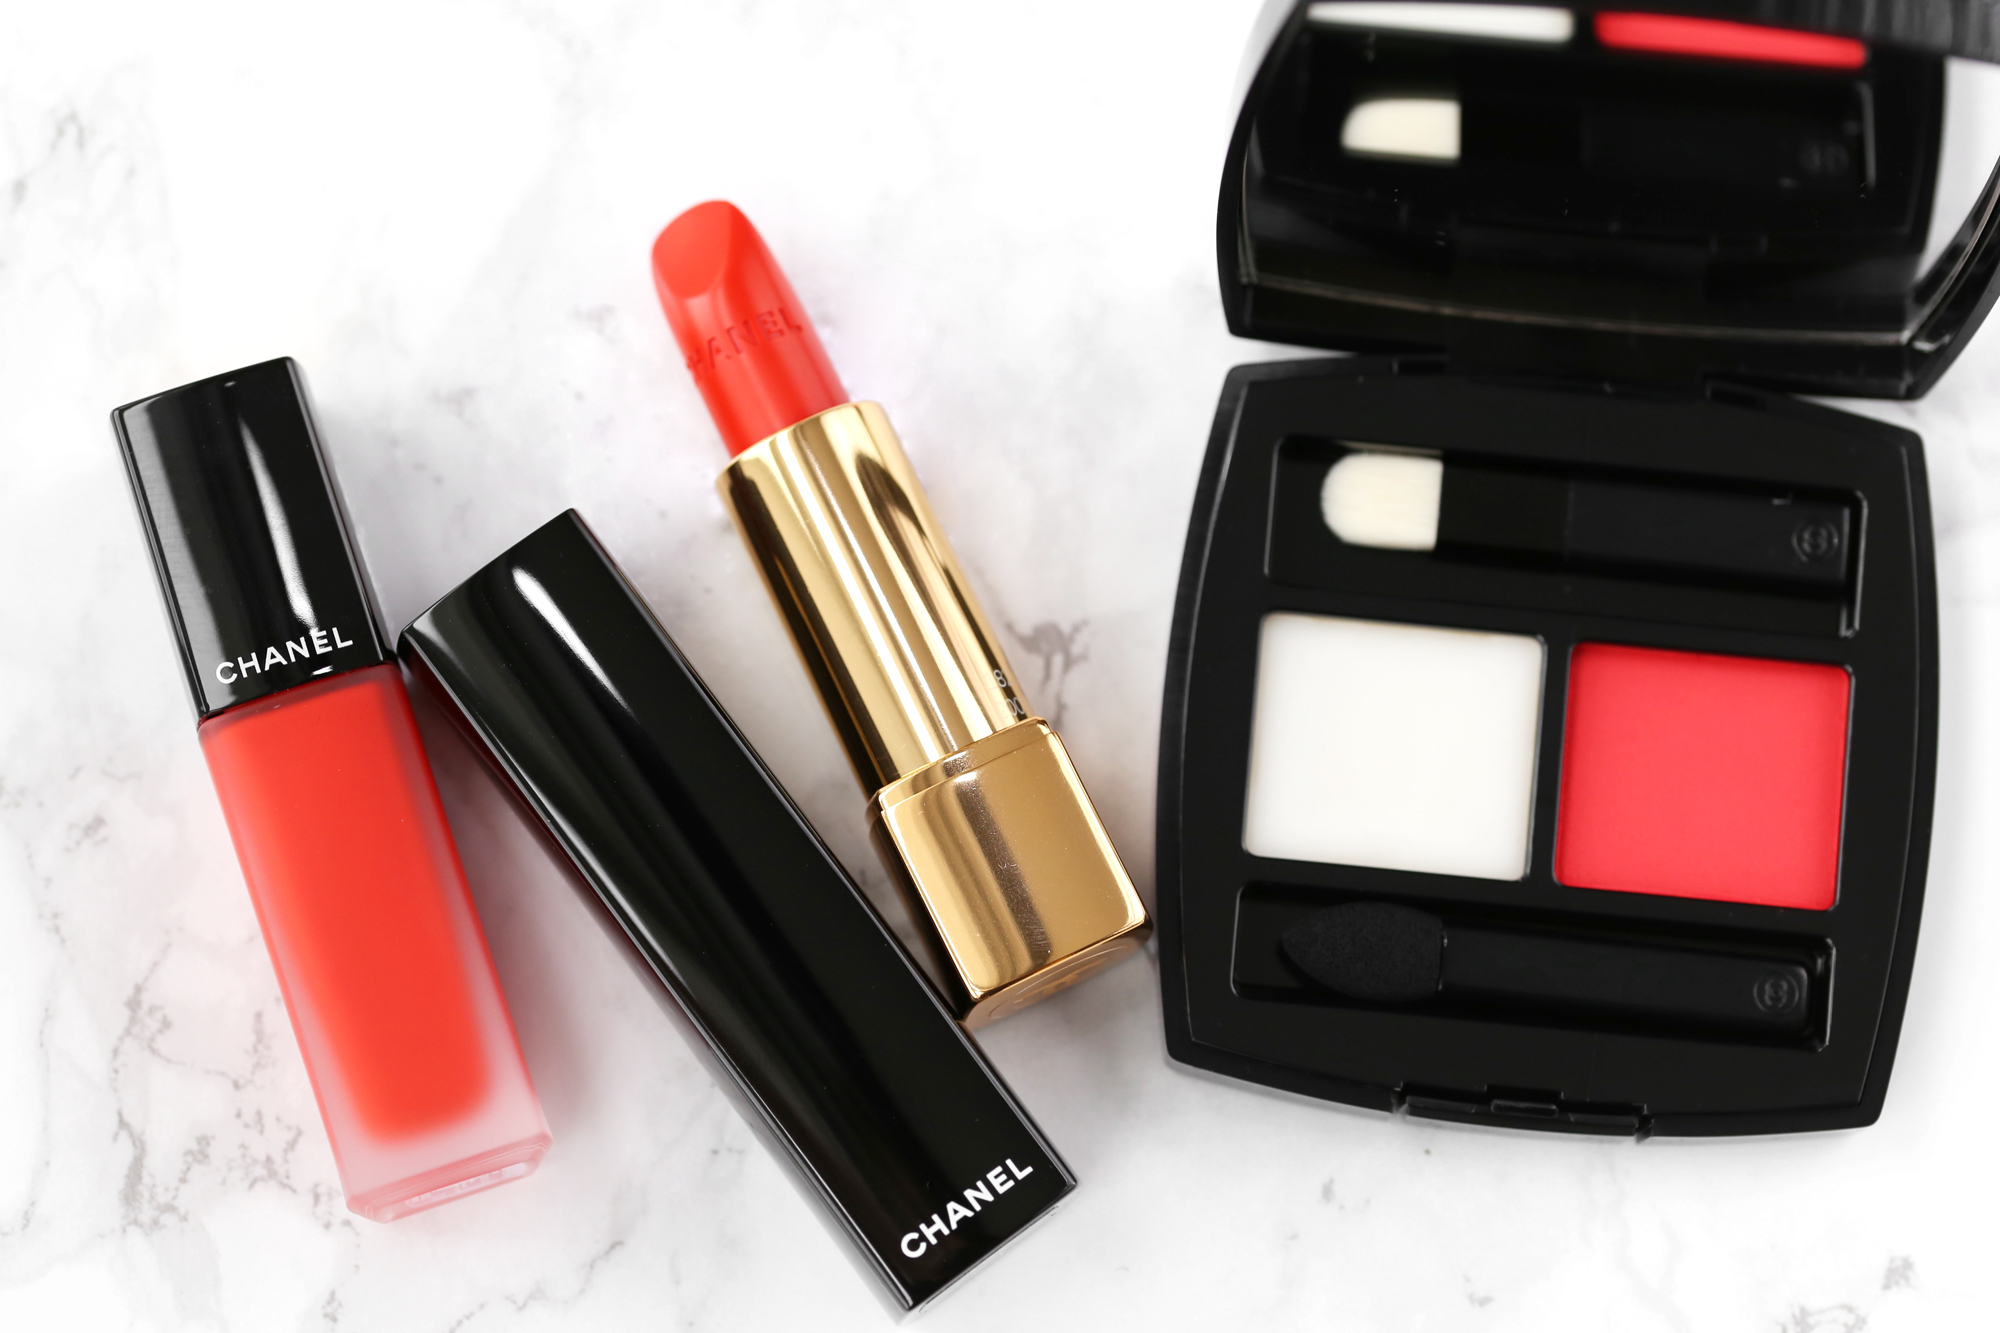 CHANEL POUDRE À LÈVRES LIP BALM AND POWDER DUO in ROSSO POMPEIANO, NAIL POLISH in 634 ARANCIO VIBRANTE, ROUGE ALLURE LUMINOUS INTENSE LIP COLOUR in 182 VIBRANTE, ROUGE ALLURE INK MATTE LIQUID LIP COLOUR in 164 ENTUSIASTA-lipsick.me_6286.jpg